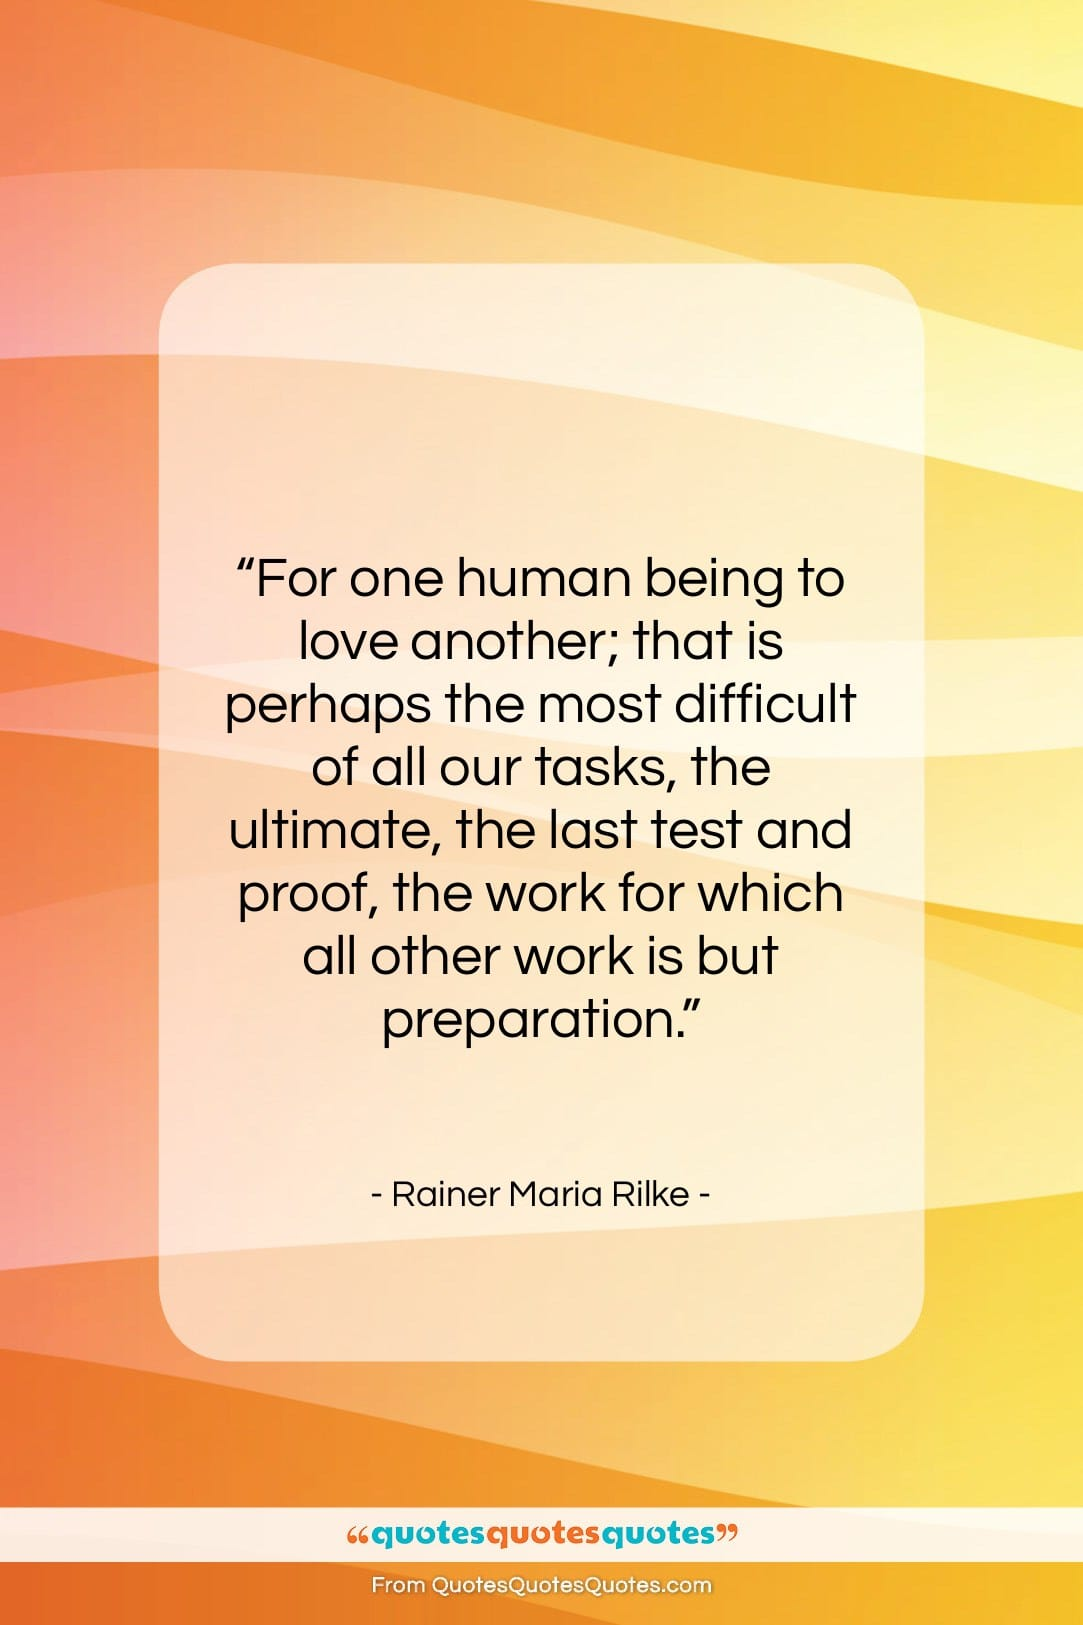 """Rainer Maria Rilke quote: """"For one human being to love another;…""""- at QuotesQuotesQuotes.com"""